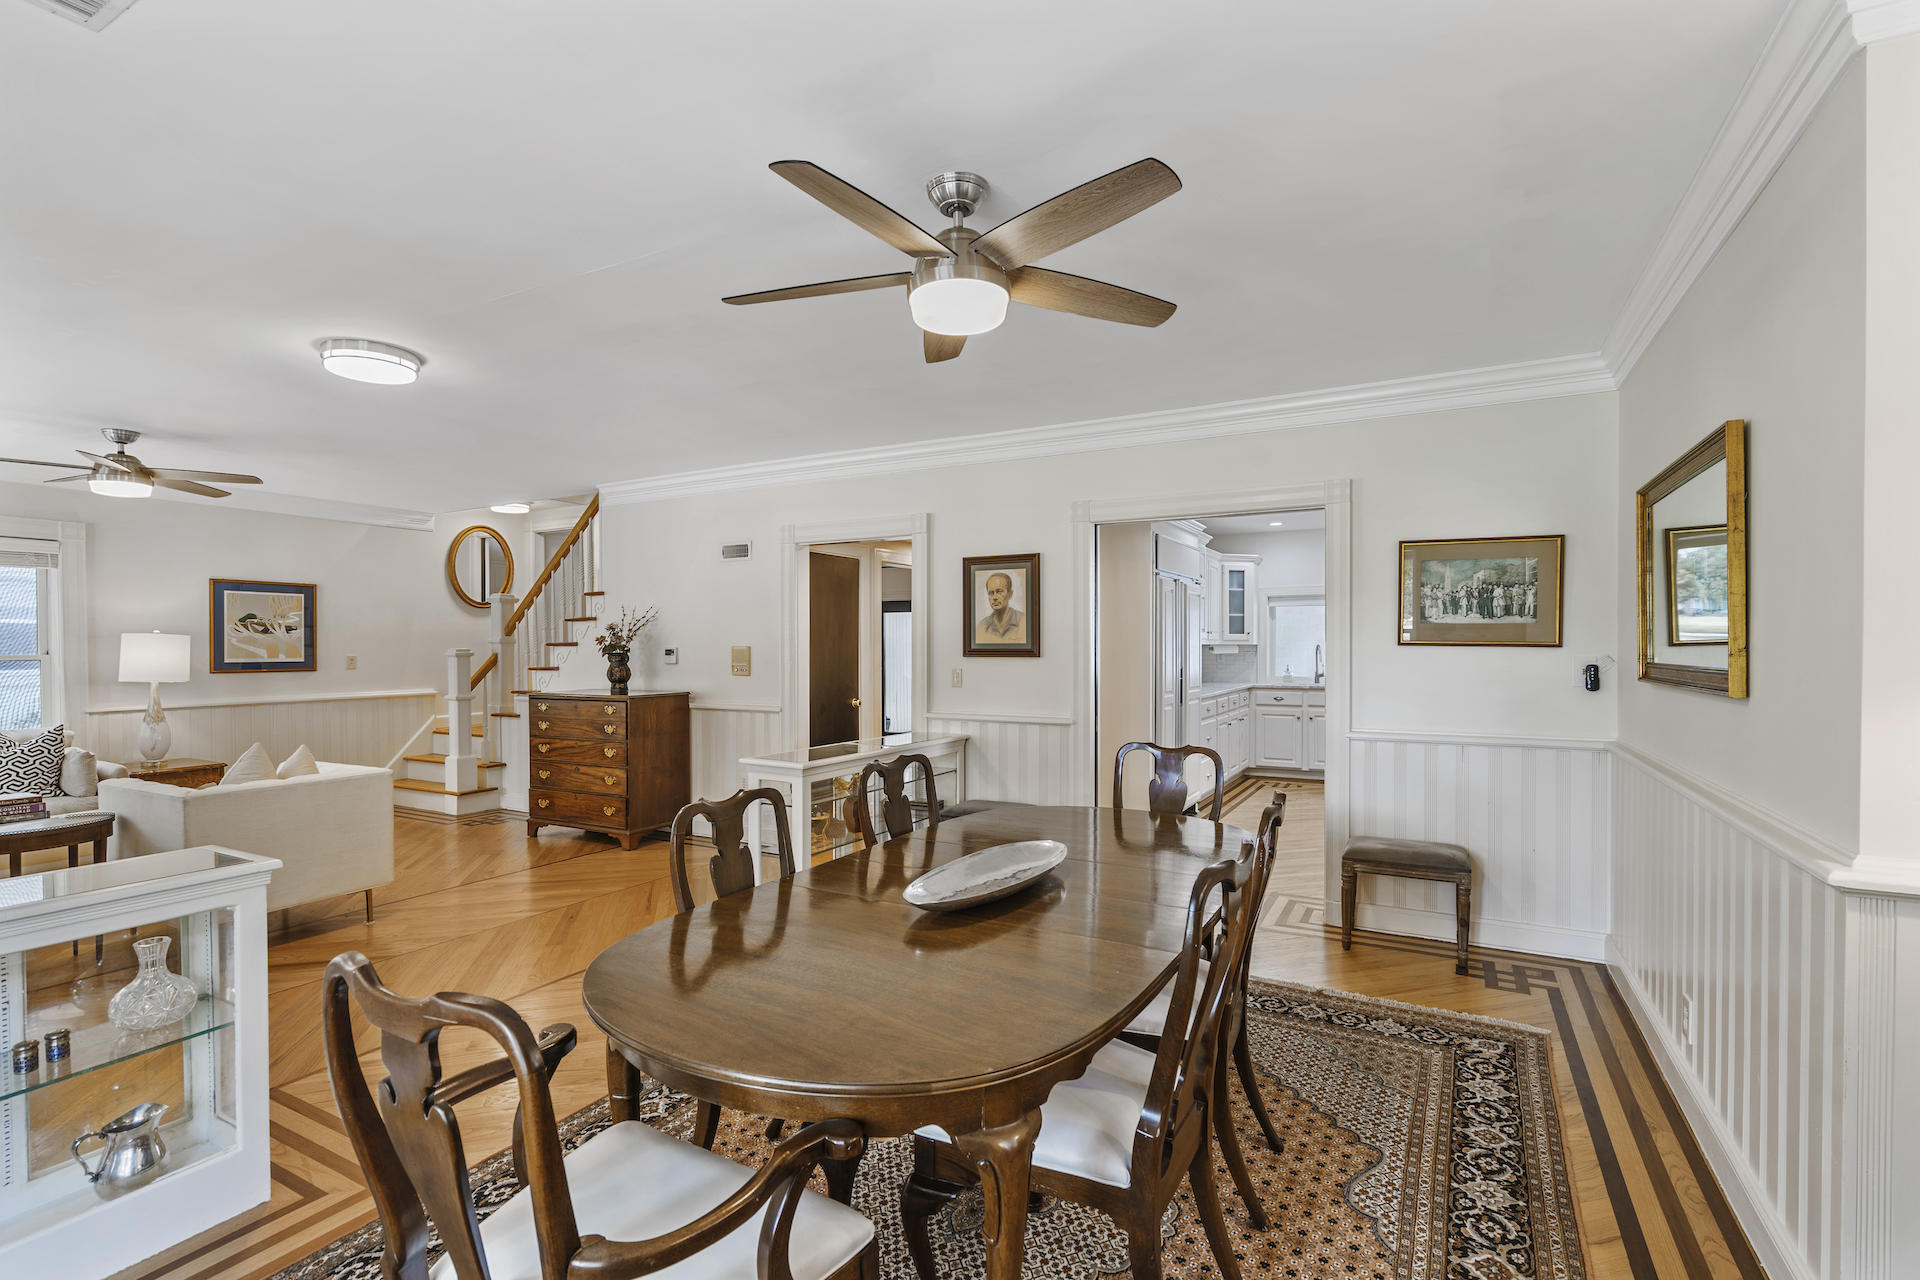 Riverland Terrace Homes For Sale - 2142 Golfview, Charleston, SC - 10